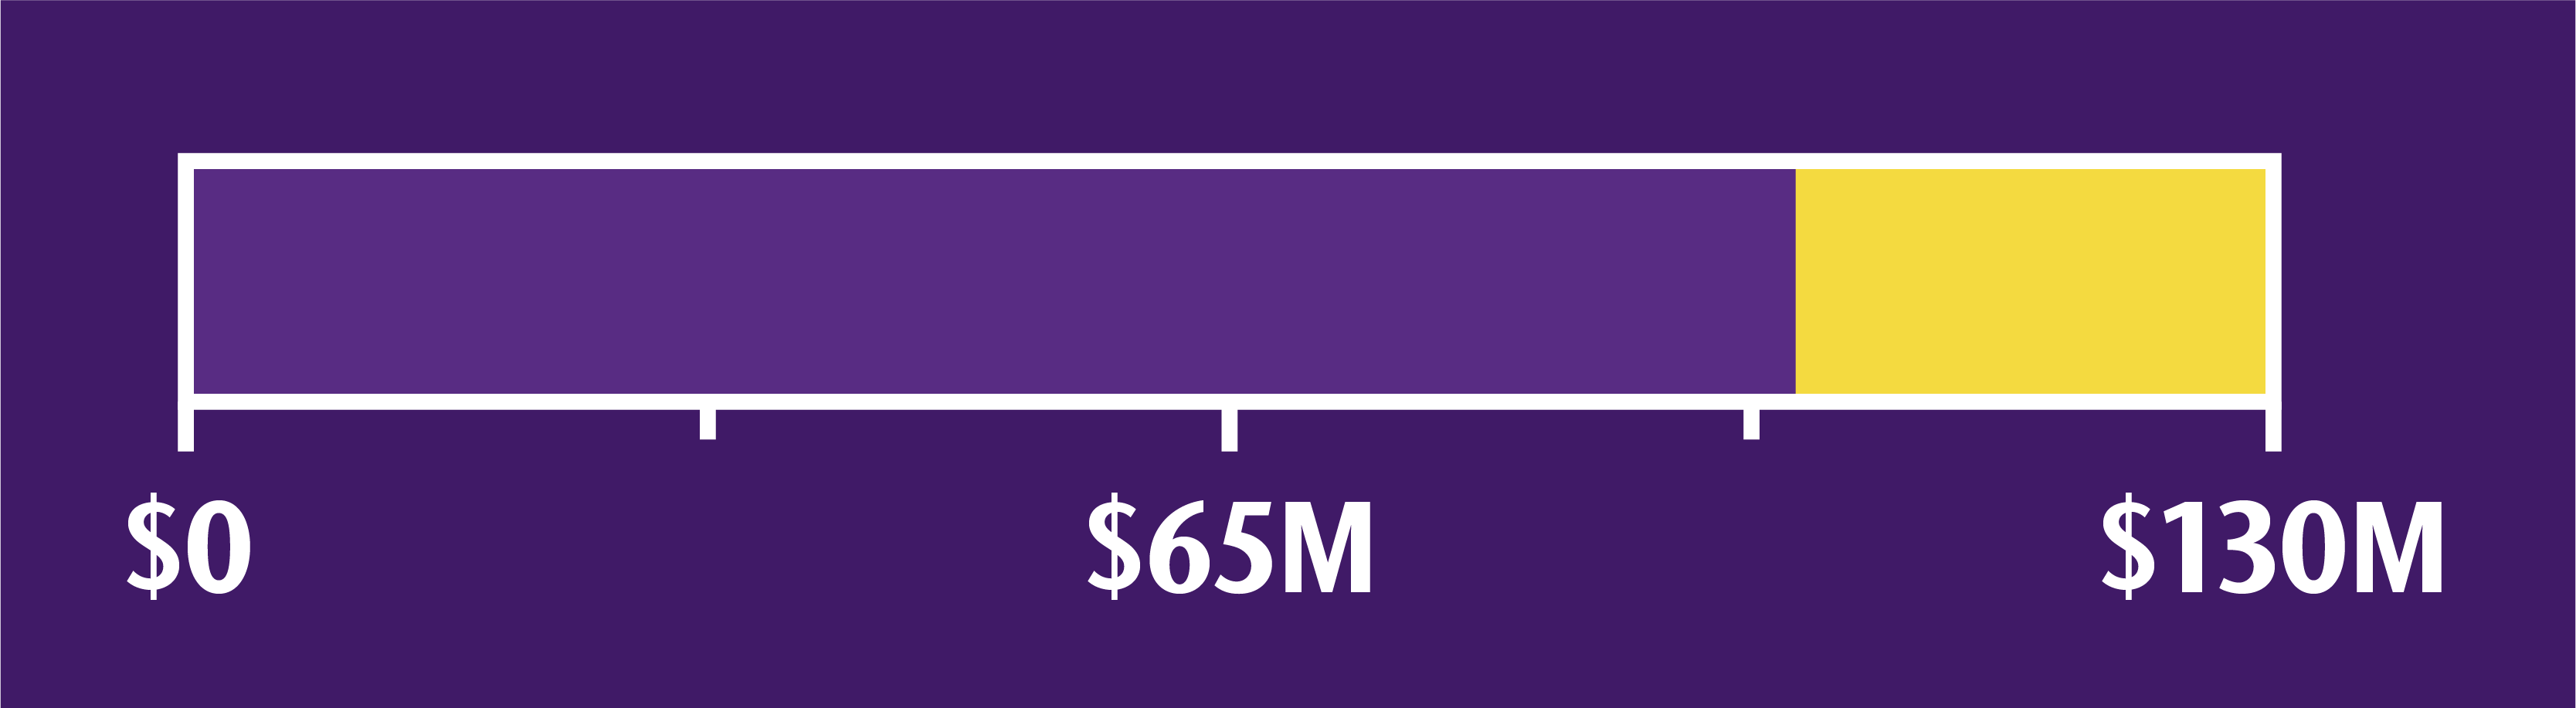 Amount of campaign goal currently reached is $98,750,000.